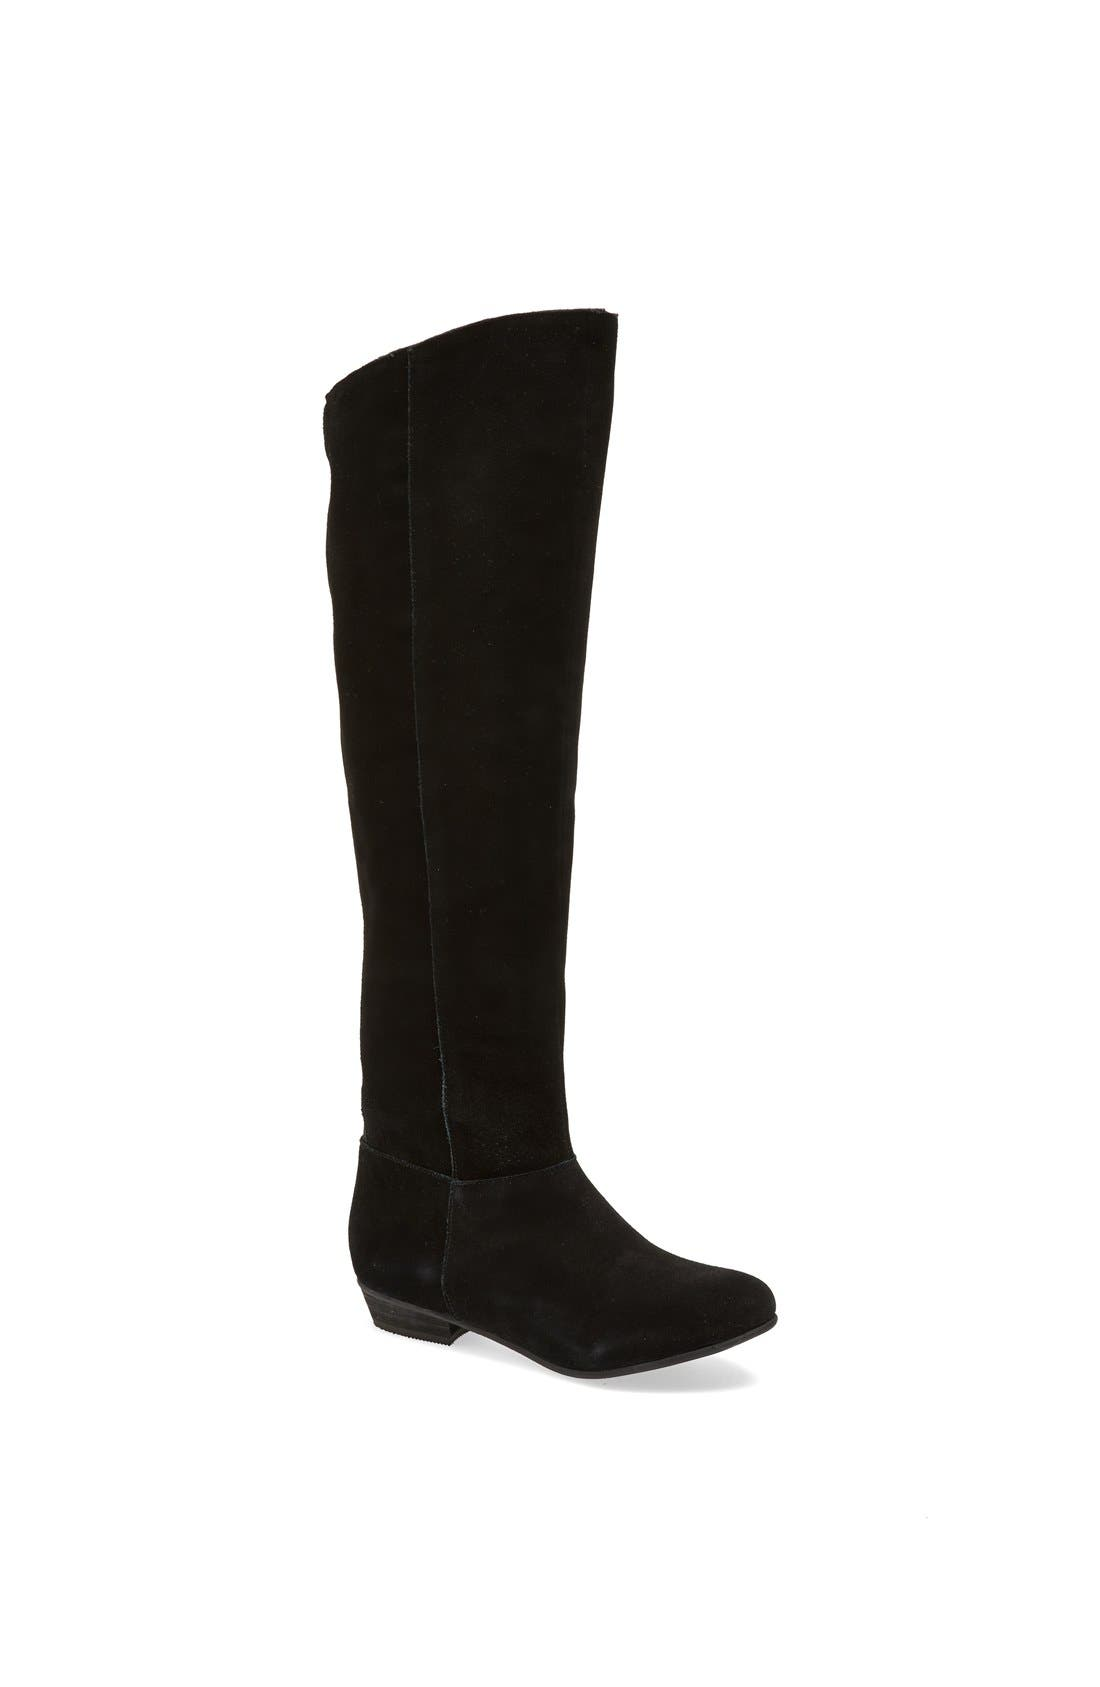 Alternate Image 1 Selected - Steve Madden 'Cuality' Knee High Suede Boot